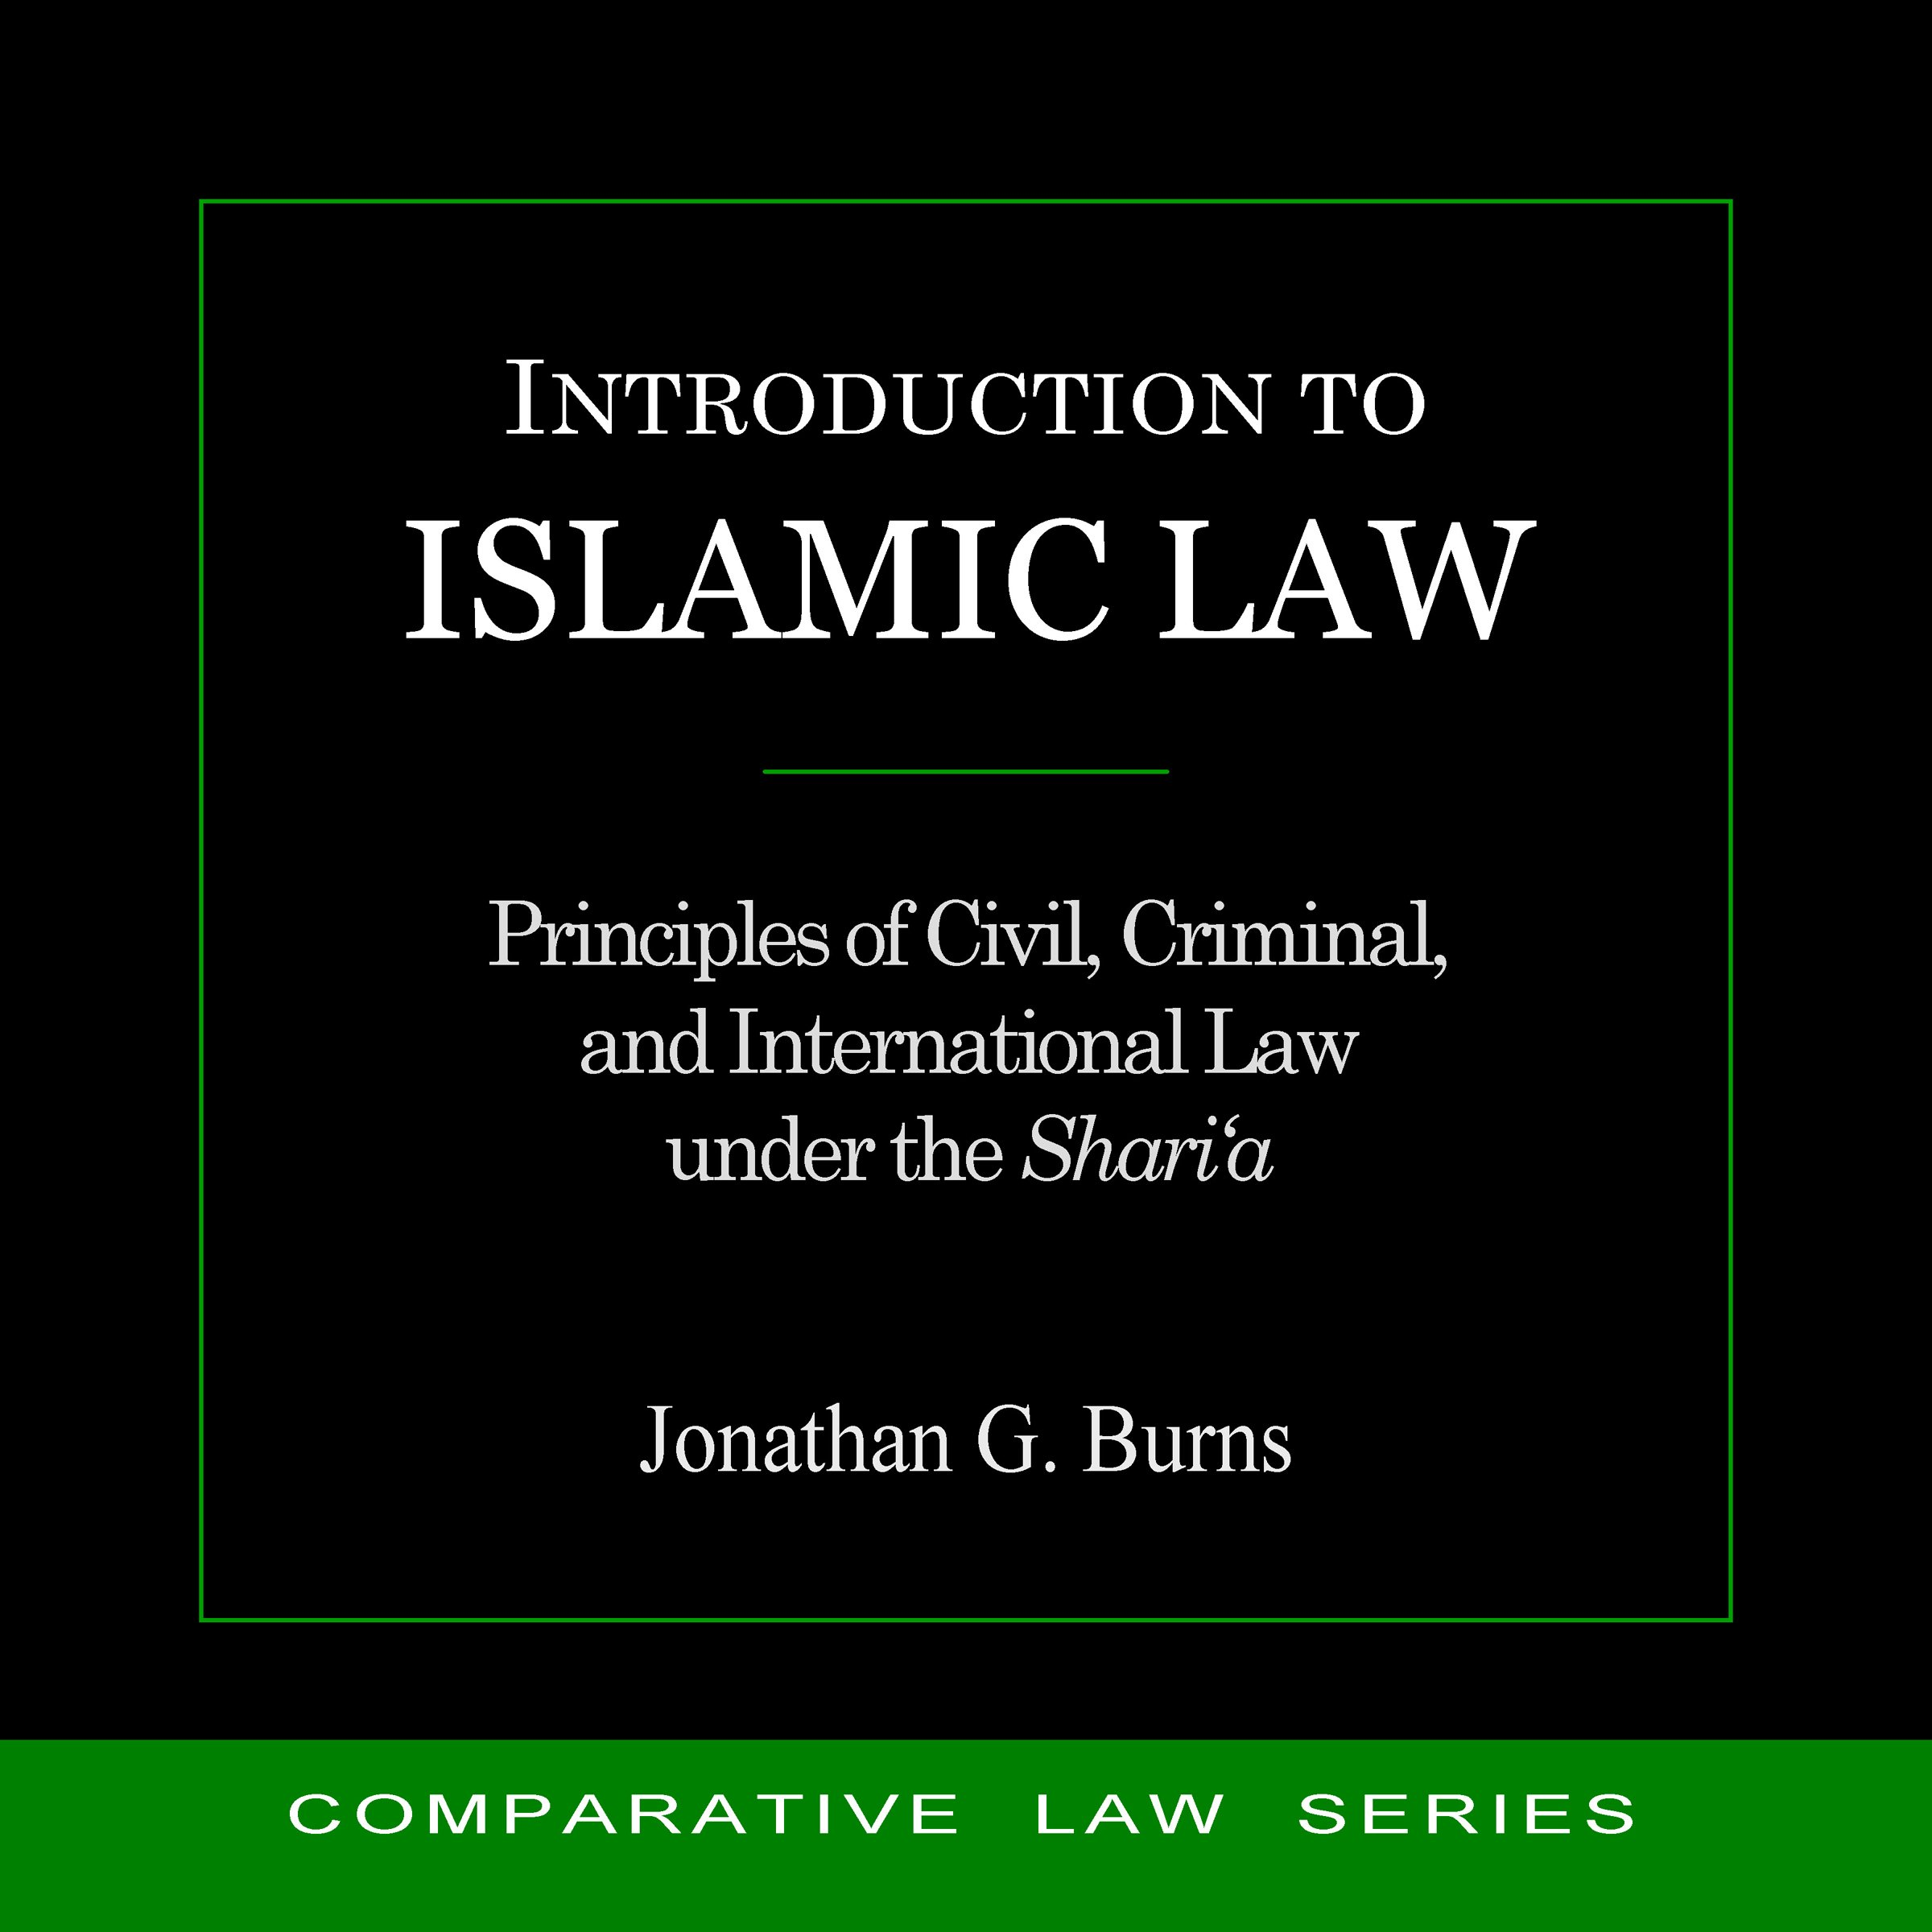 Image OfIntroduction To Islamic Law: Principles Of Civil, Criminal, And International Law Under The Shari'a